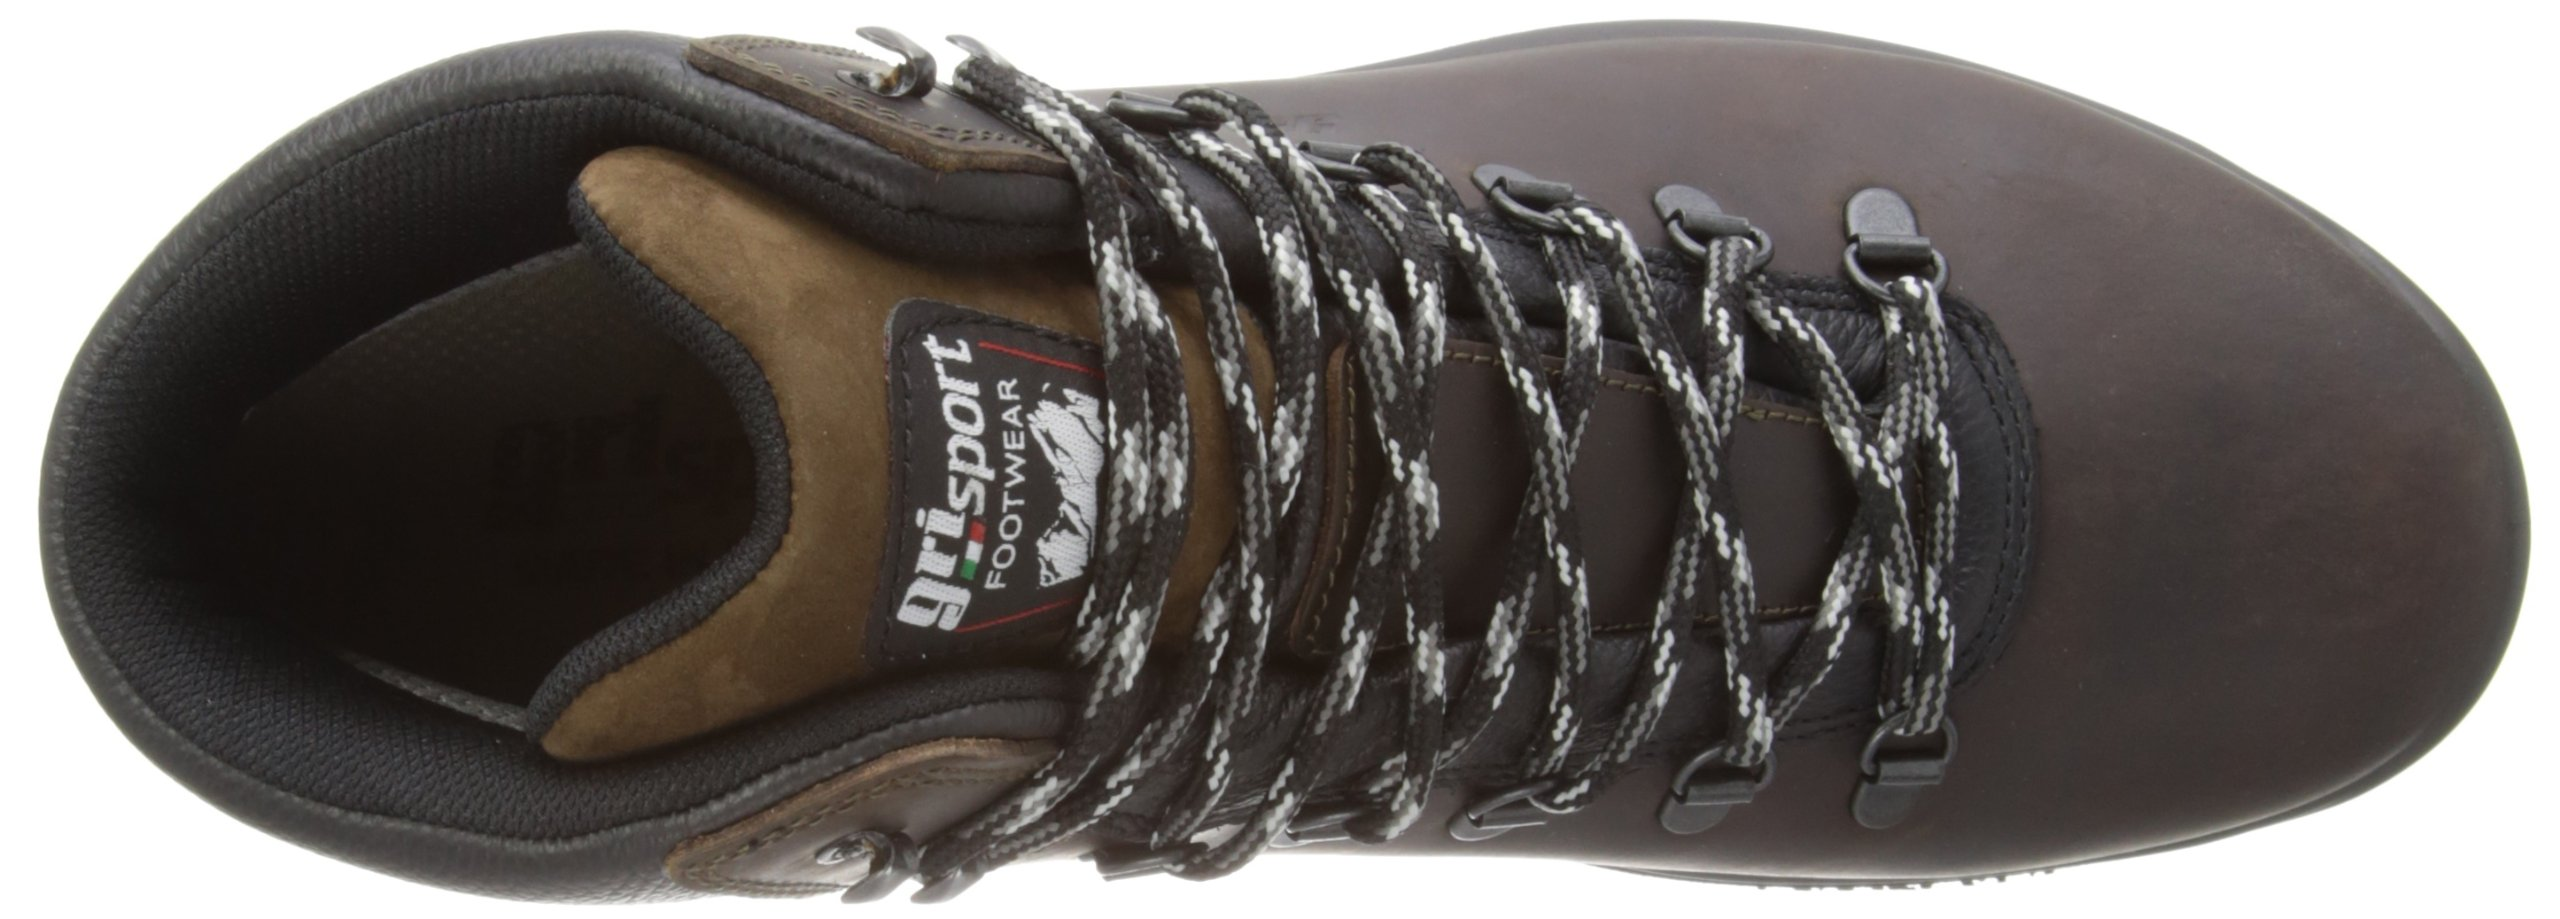 Grisport Unisex-Adult Fuse Trekking and Hiking Boots 7